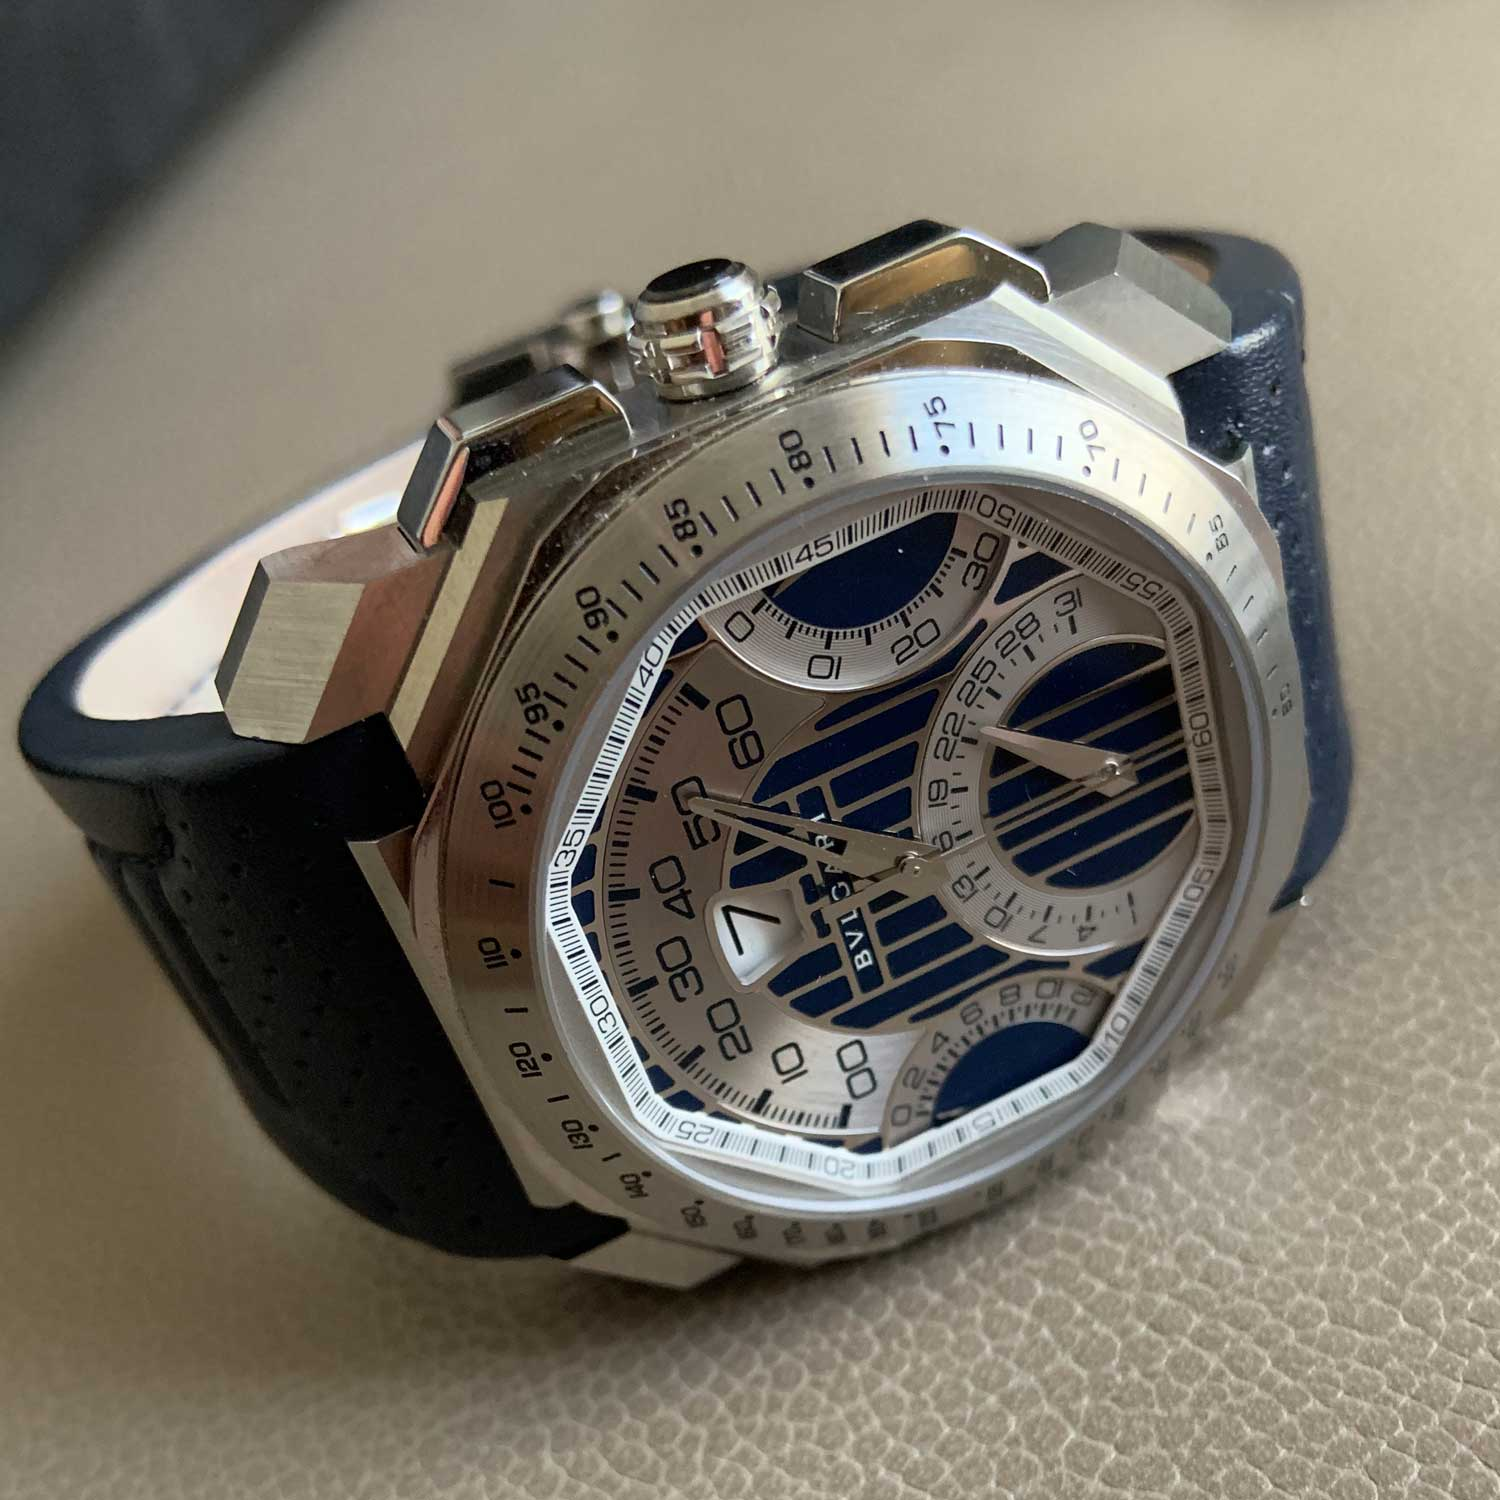 Lot 13: Bulgari Octo Quadri-Retro Maserati, Ref. BG045SCHQR/MAS stainless steel retrograde chronograph wristwatch with jump-hour display and date, circa 2012